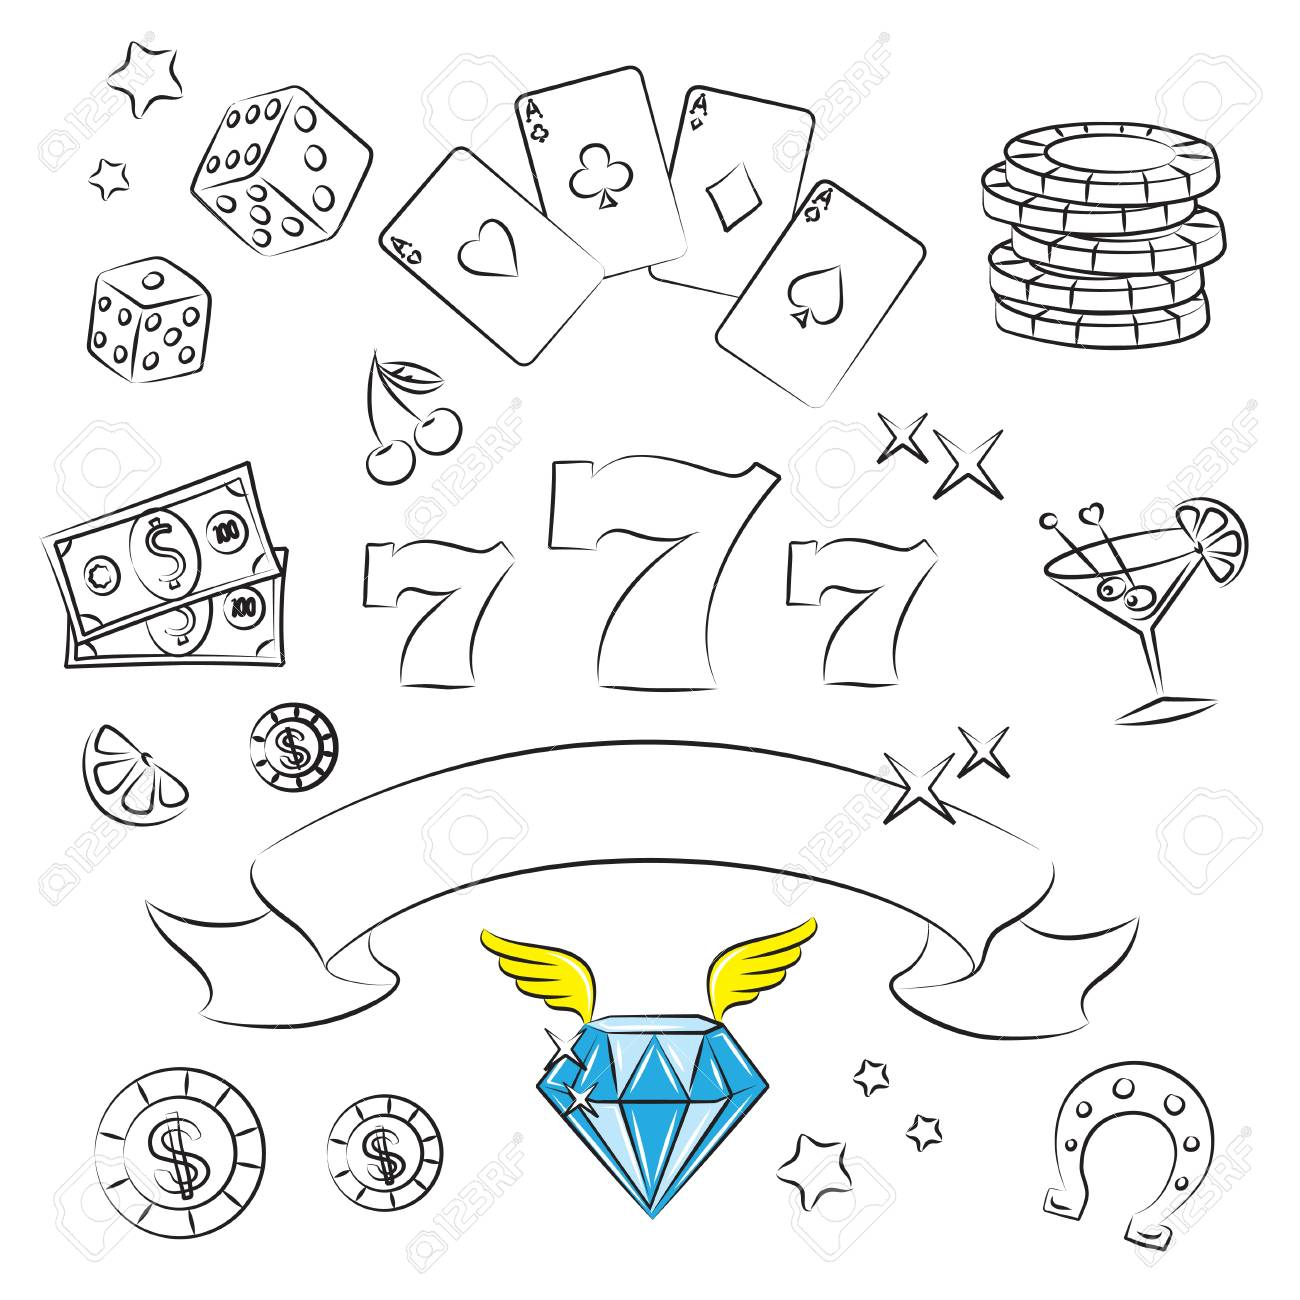 Casino Elements Collection Stock Vector - 9507647